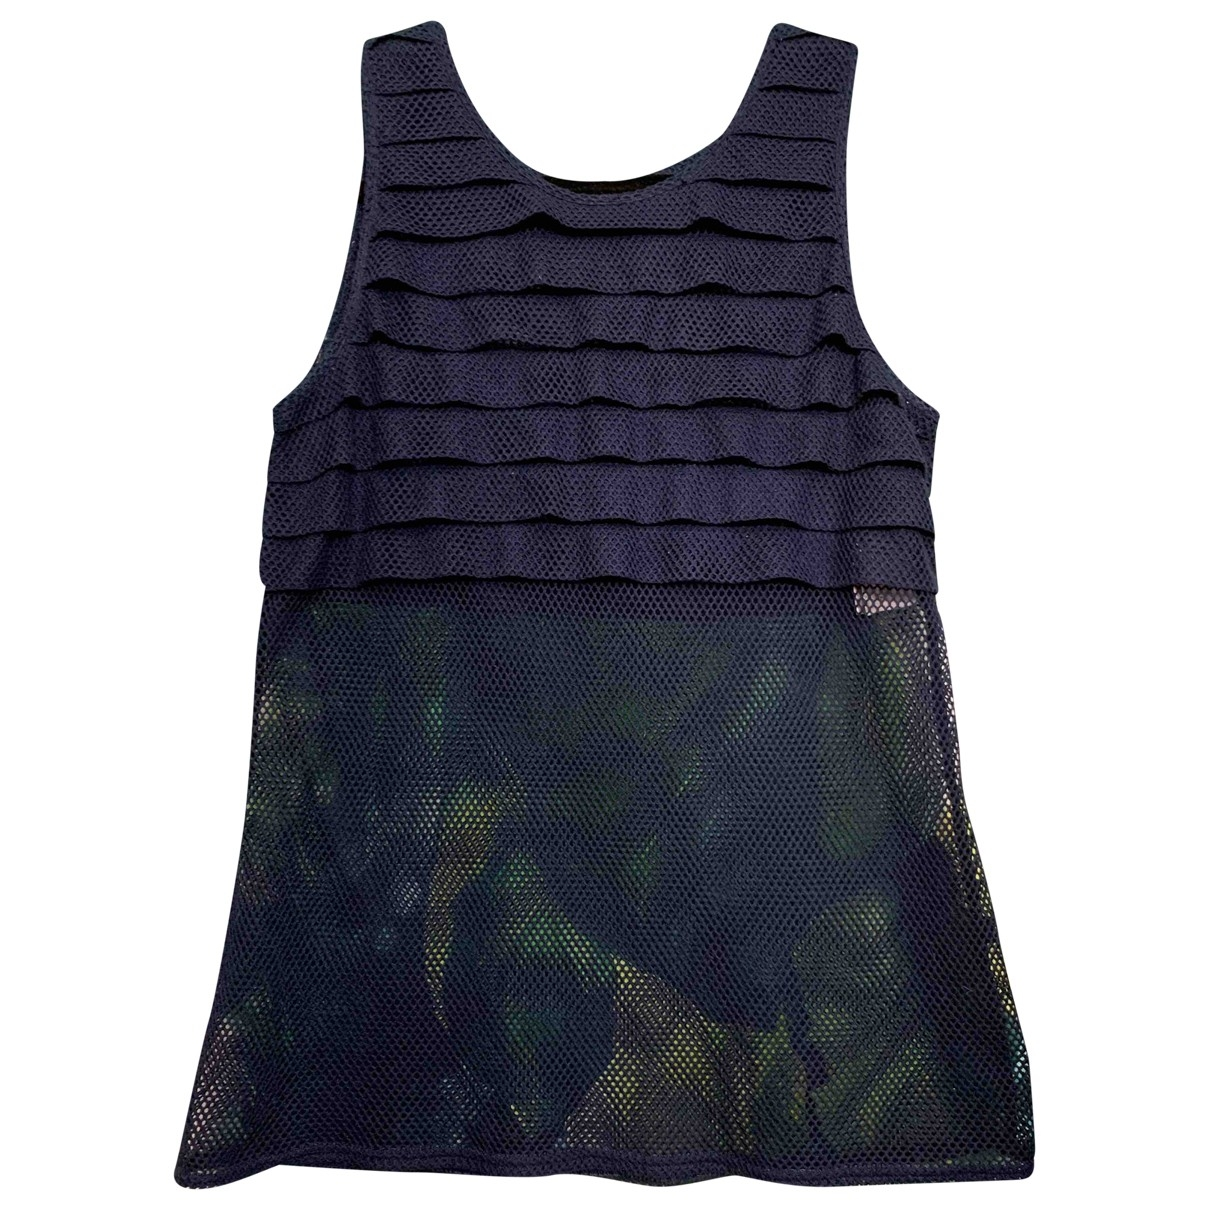 Chanel \N Blue  top for Women One Size FR